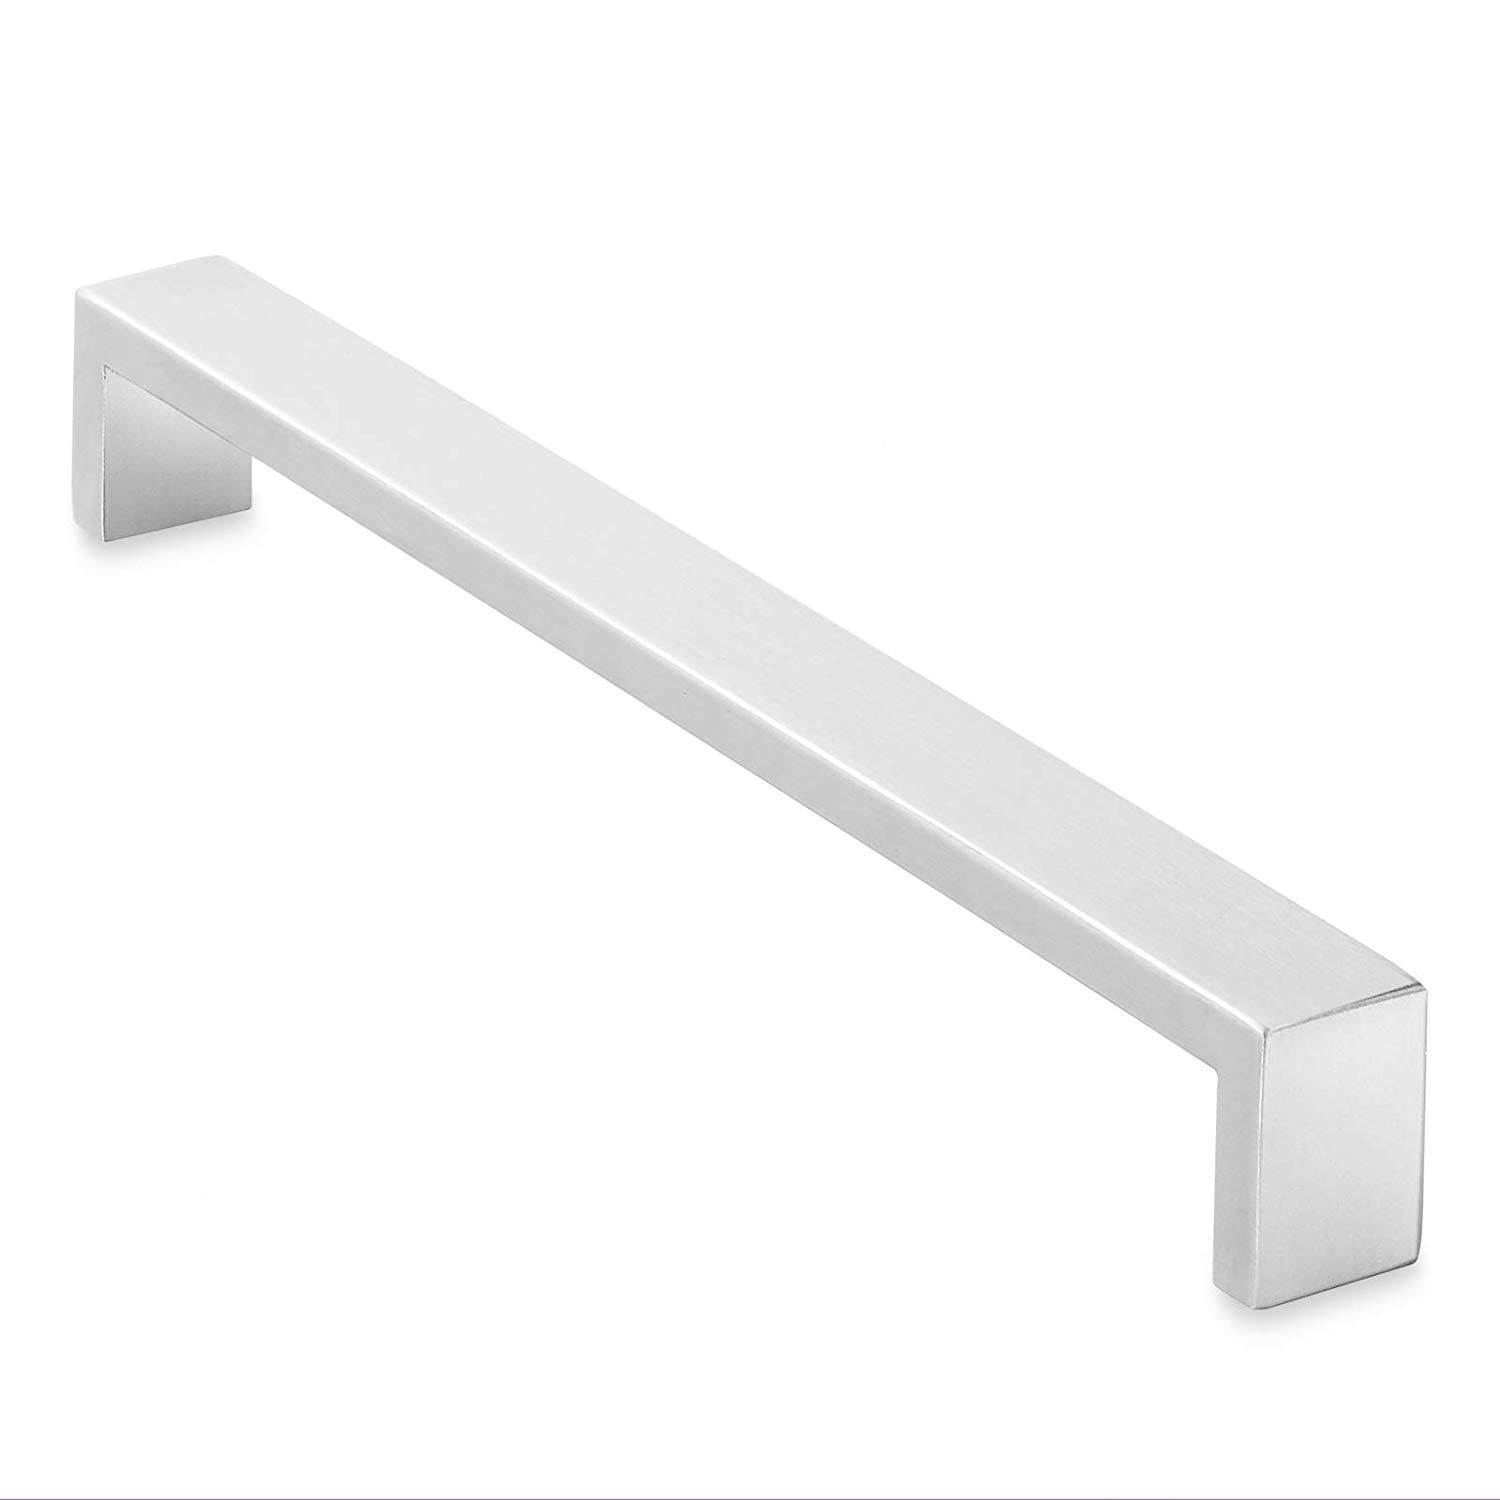 Cauldham Solid Stainless Steel Cabinet Hardware Square Handle Pull